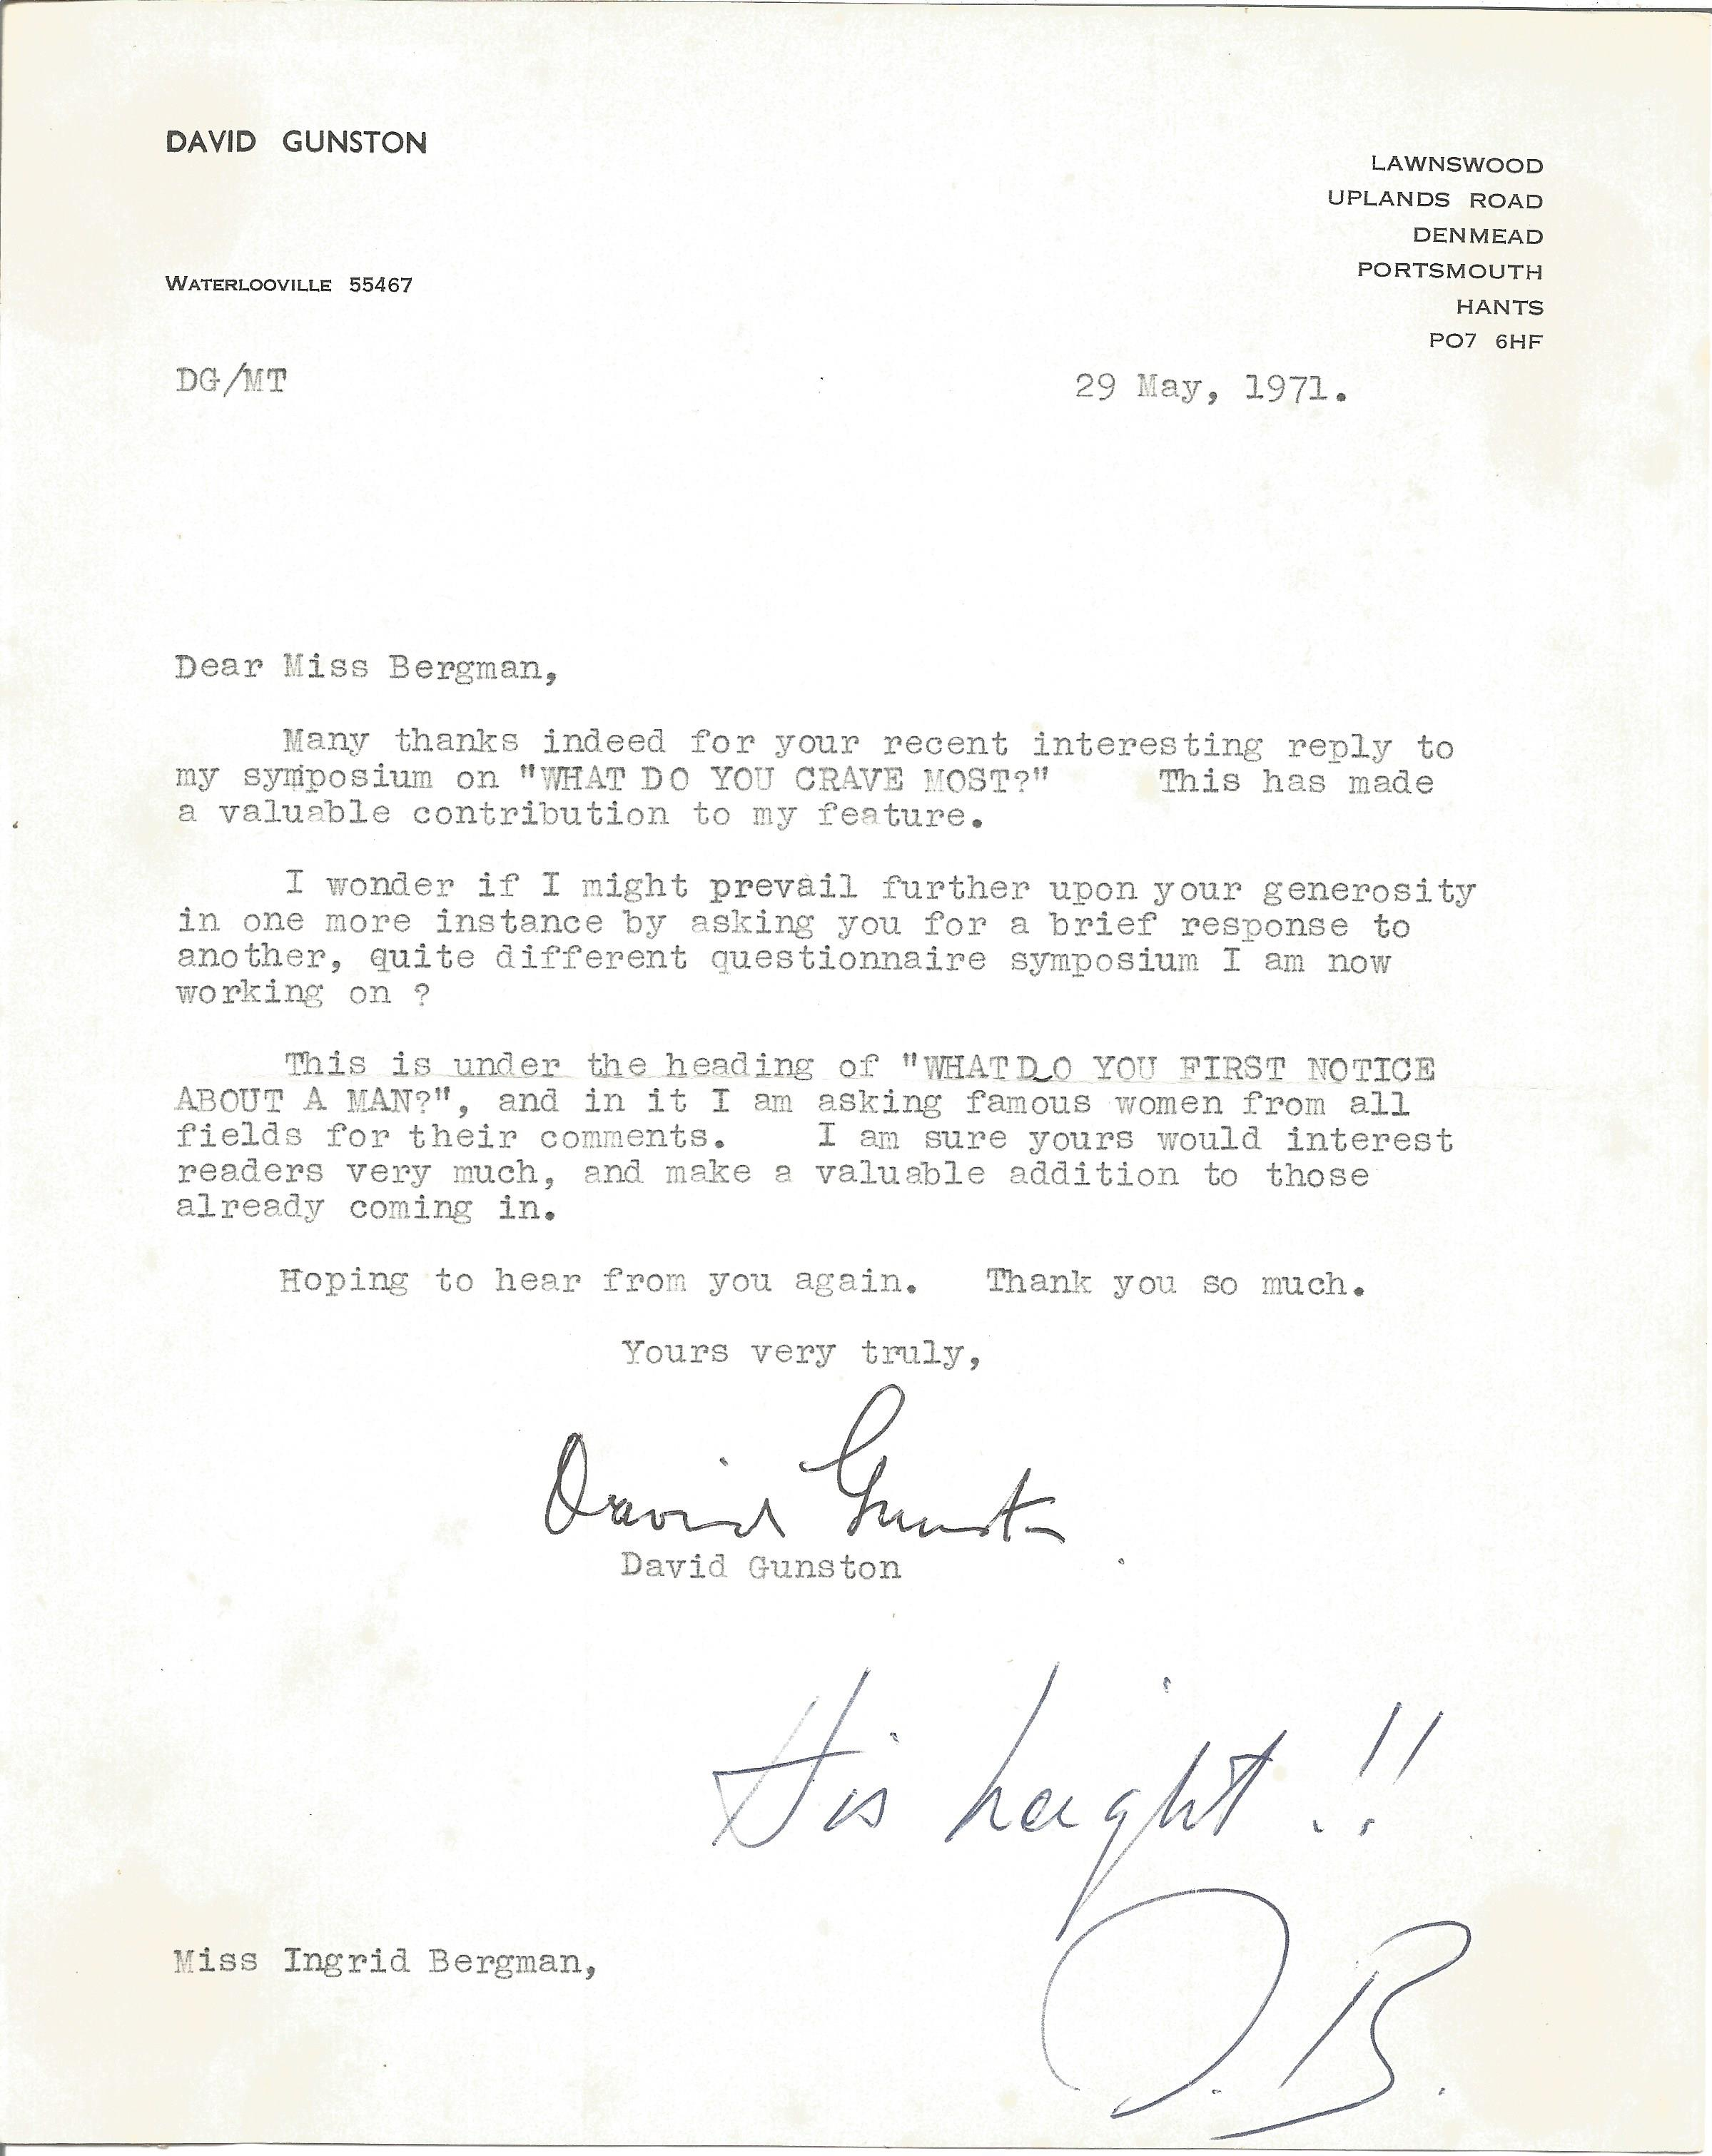 Actress Ingrid Bergman, a two-word response with her initials on a letter dated 29/5/71 from a fan